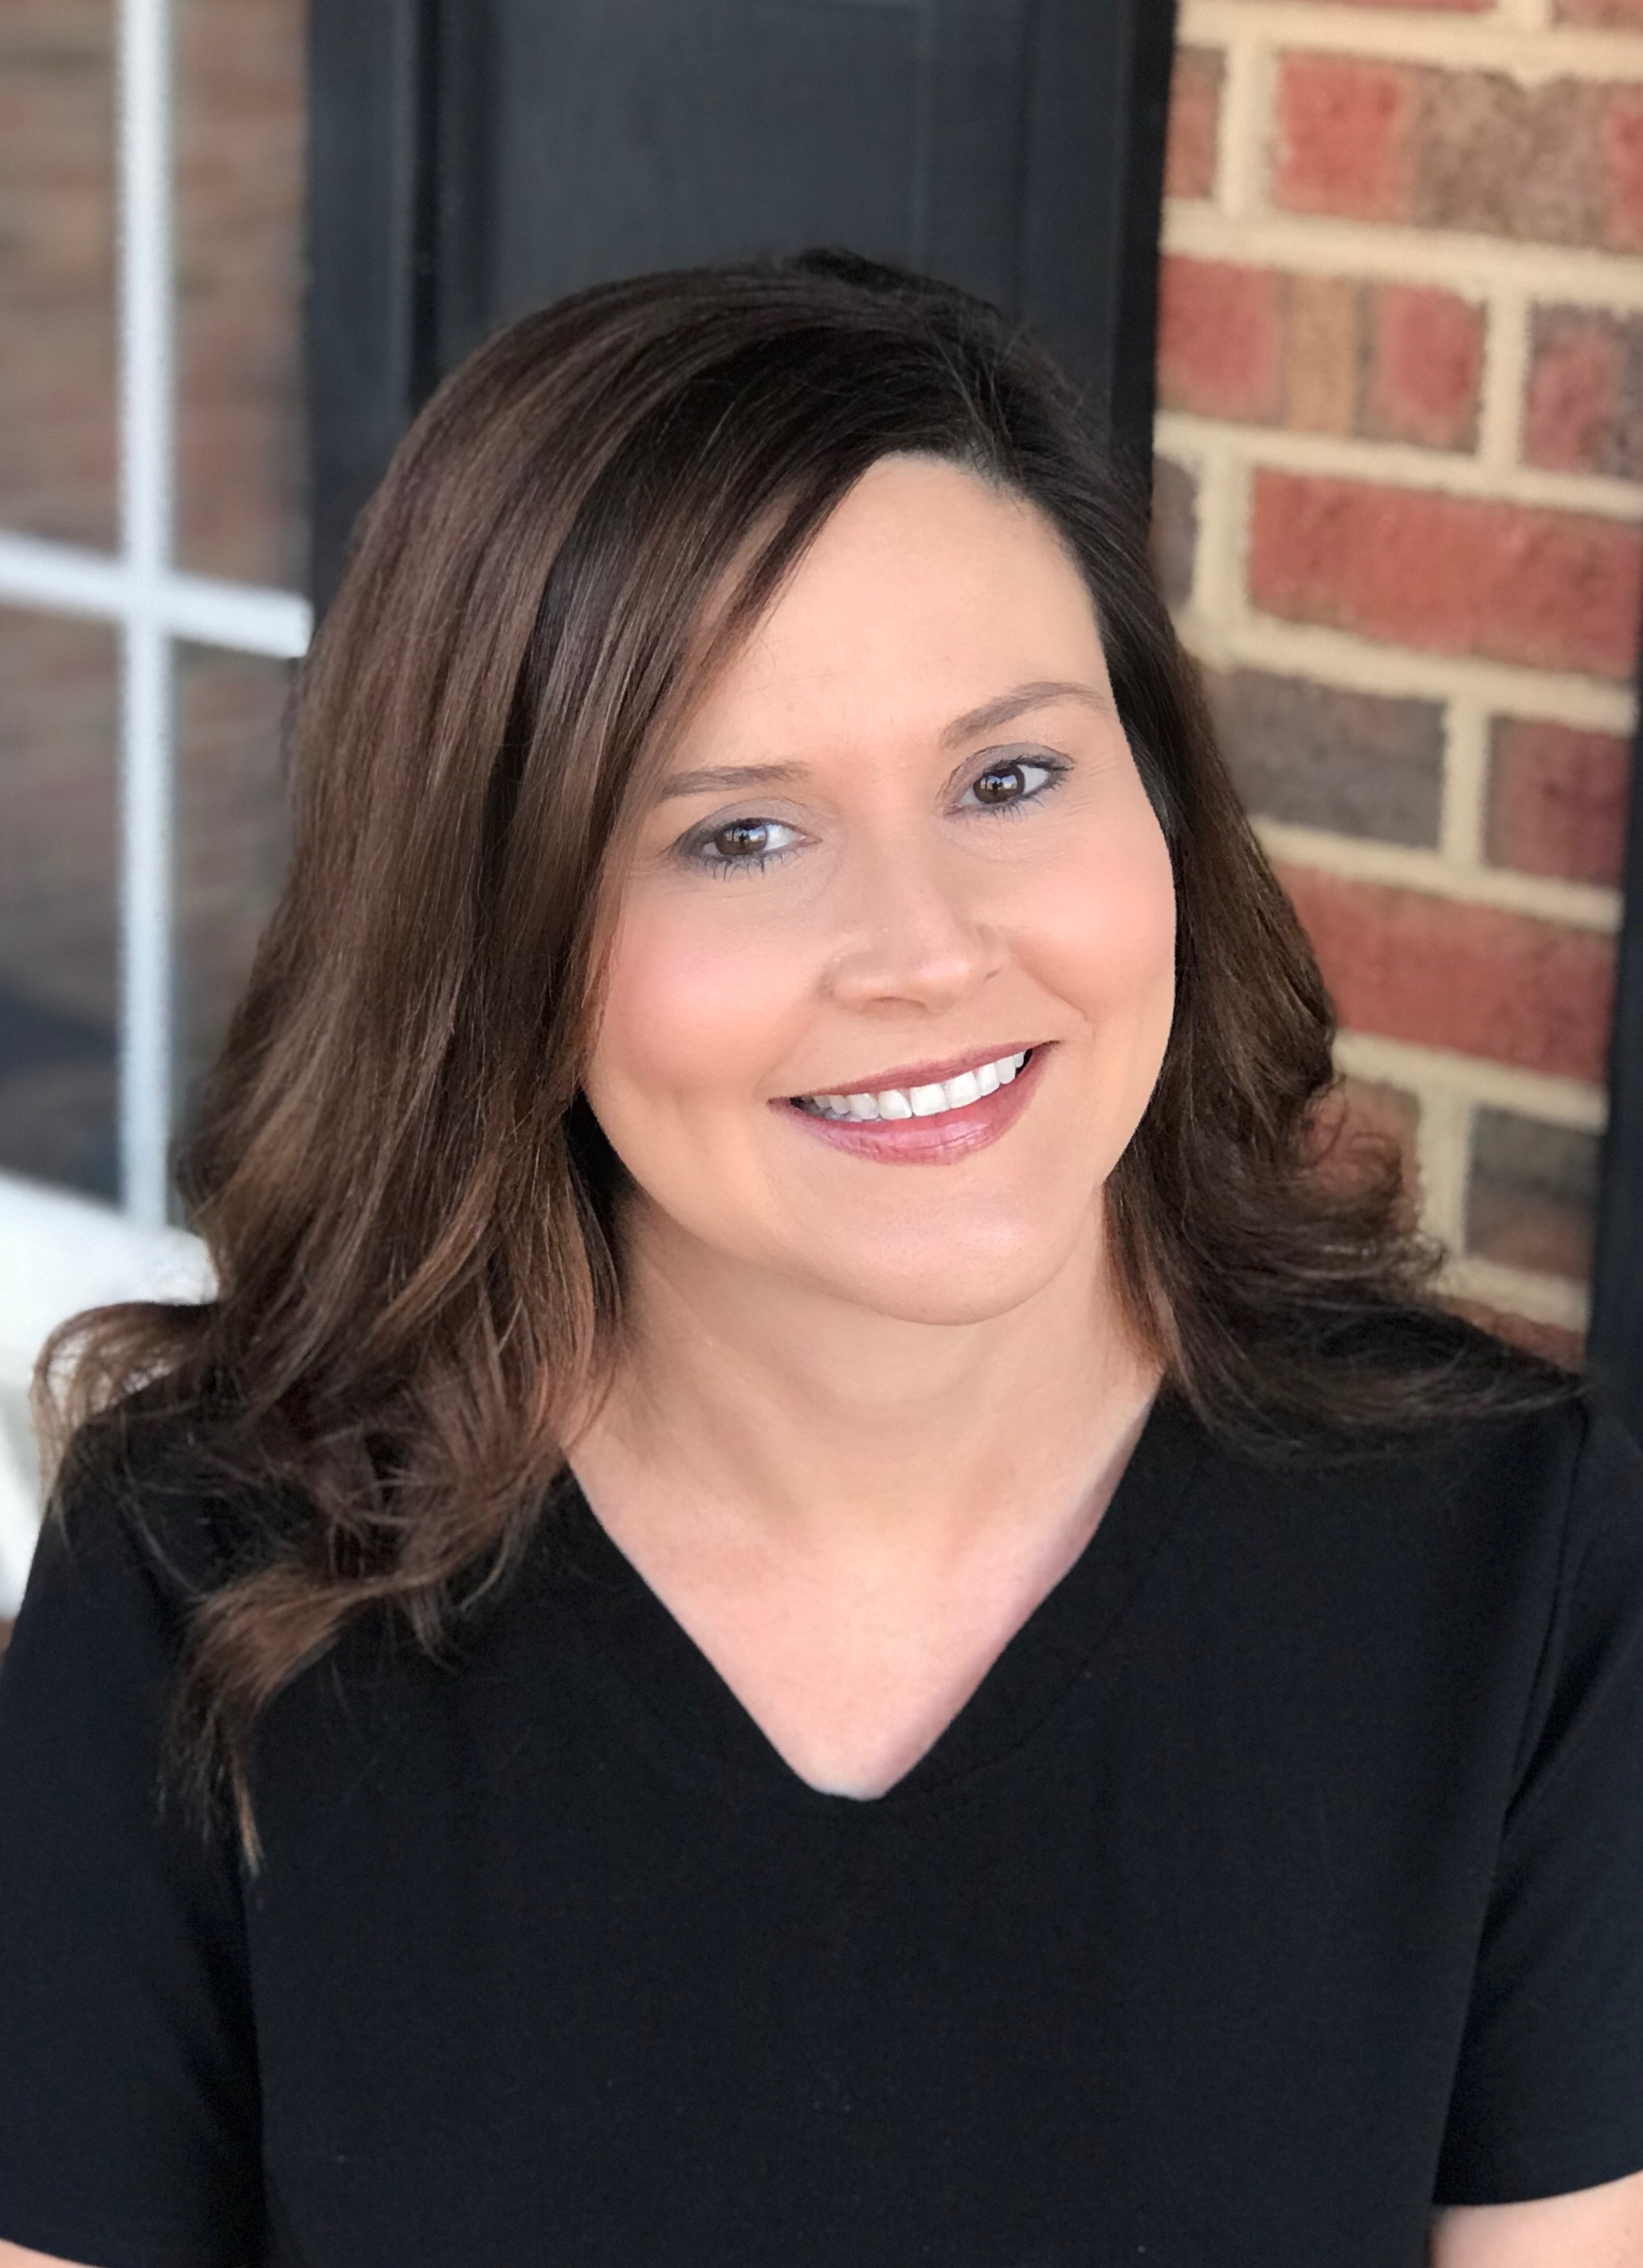 Robin Wilson - Robin is a Registered hygienist and joined Tyger River Family Dentistry in April 2018. Robin graduated from Florence Darlington Technical College in 1998. Robin enjoys horses and spending quality time with her daughter.